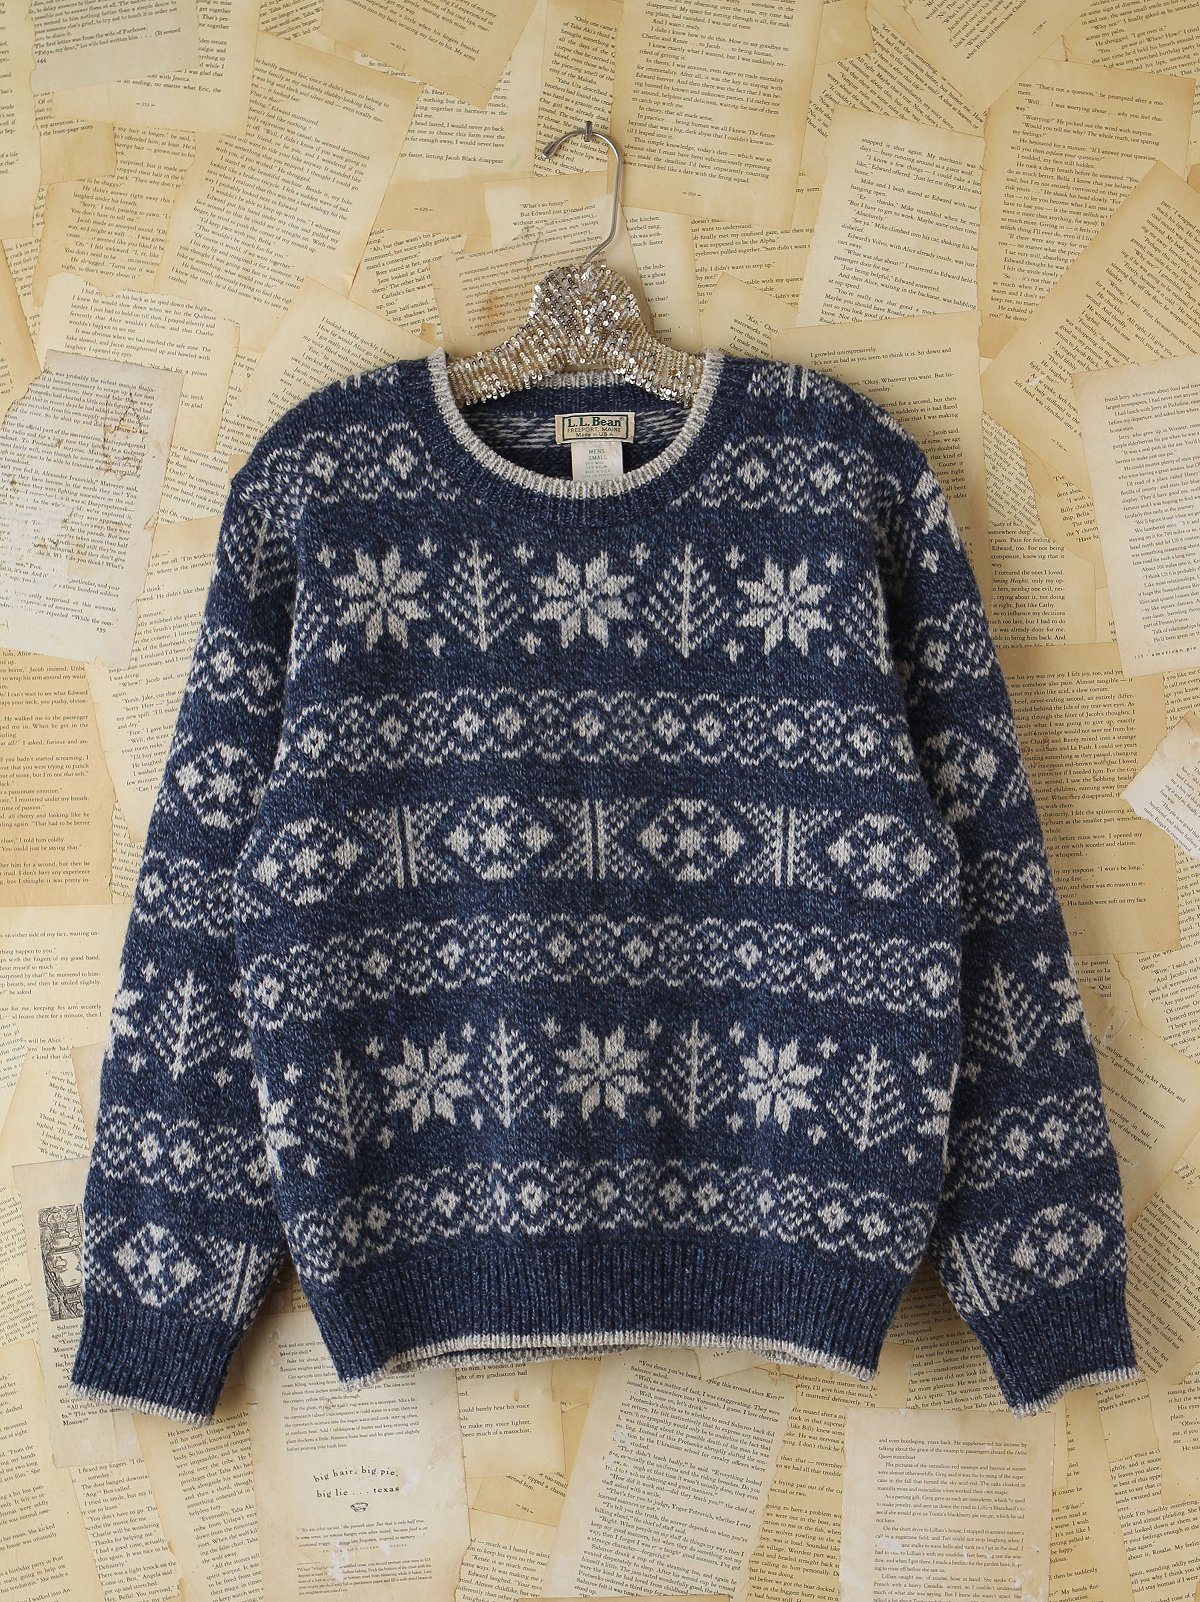 Vintage Snowflake Holiday Sweater